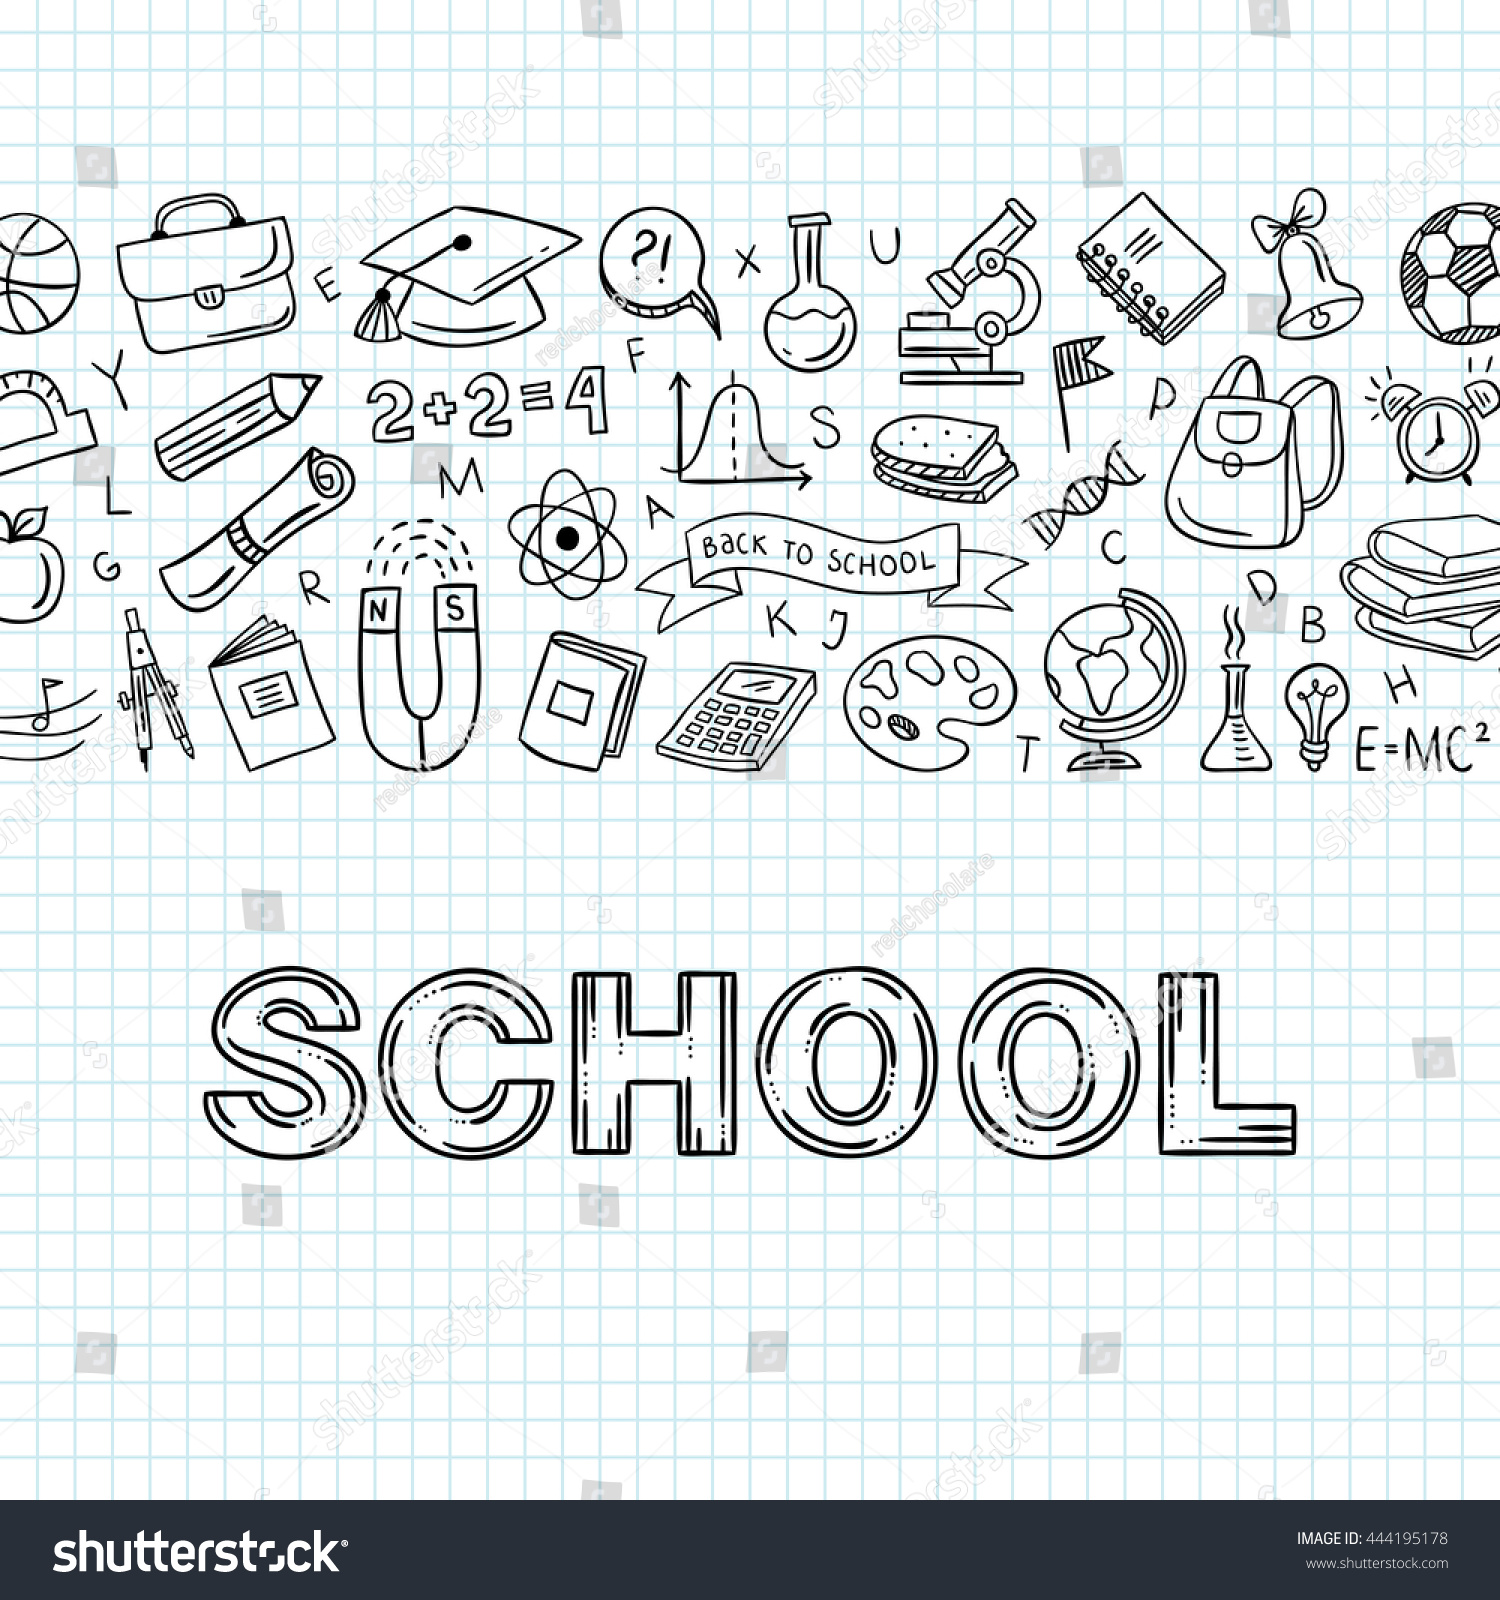 Outline School Icons Doodle Symbols Education Stock Vector Royalty